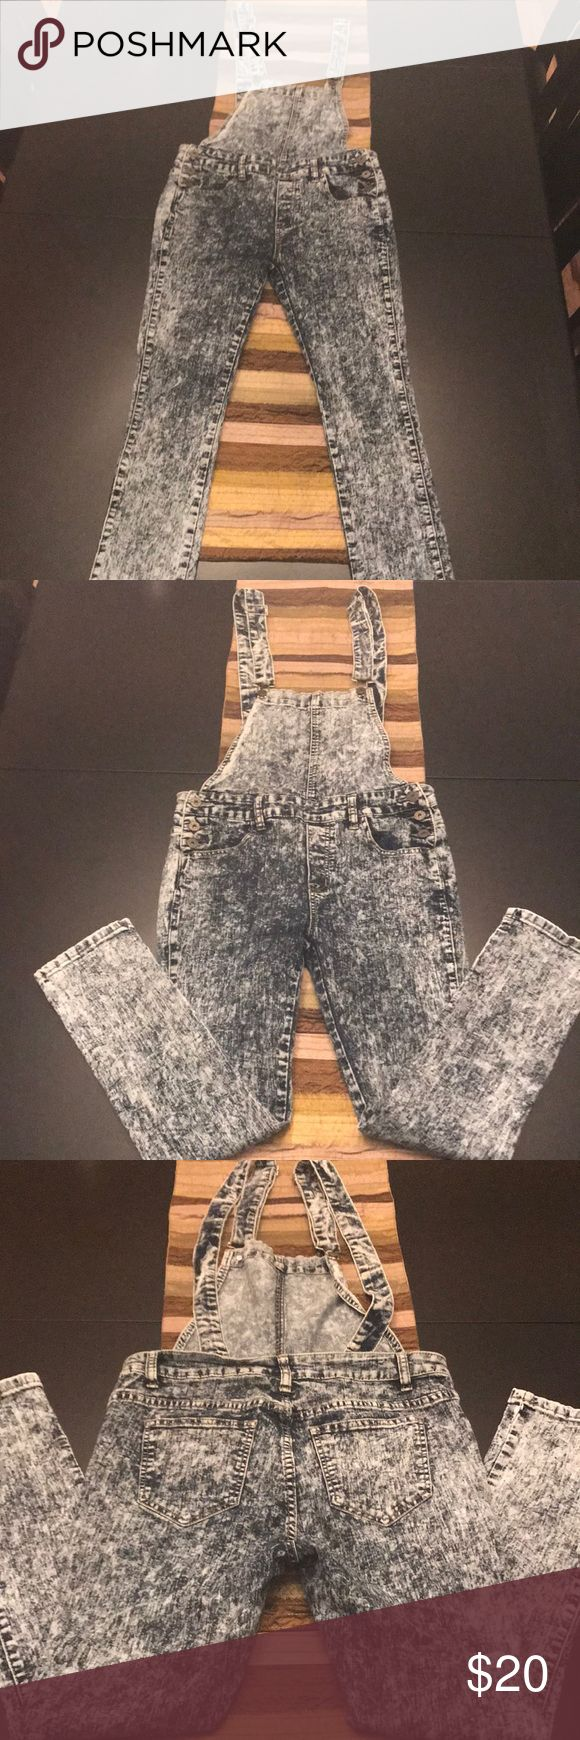 ♦️5 for 25 ♦️Acid Wash Skinny Jean Overalls Gently loved overalls size large. Purchased at Love Culture Love Culture Jeans Overalls